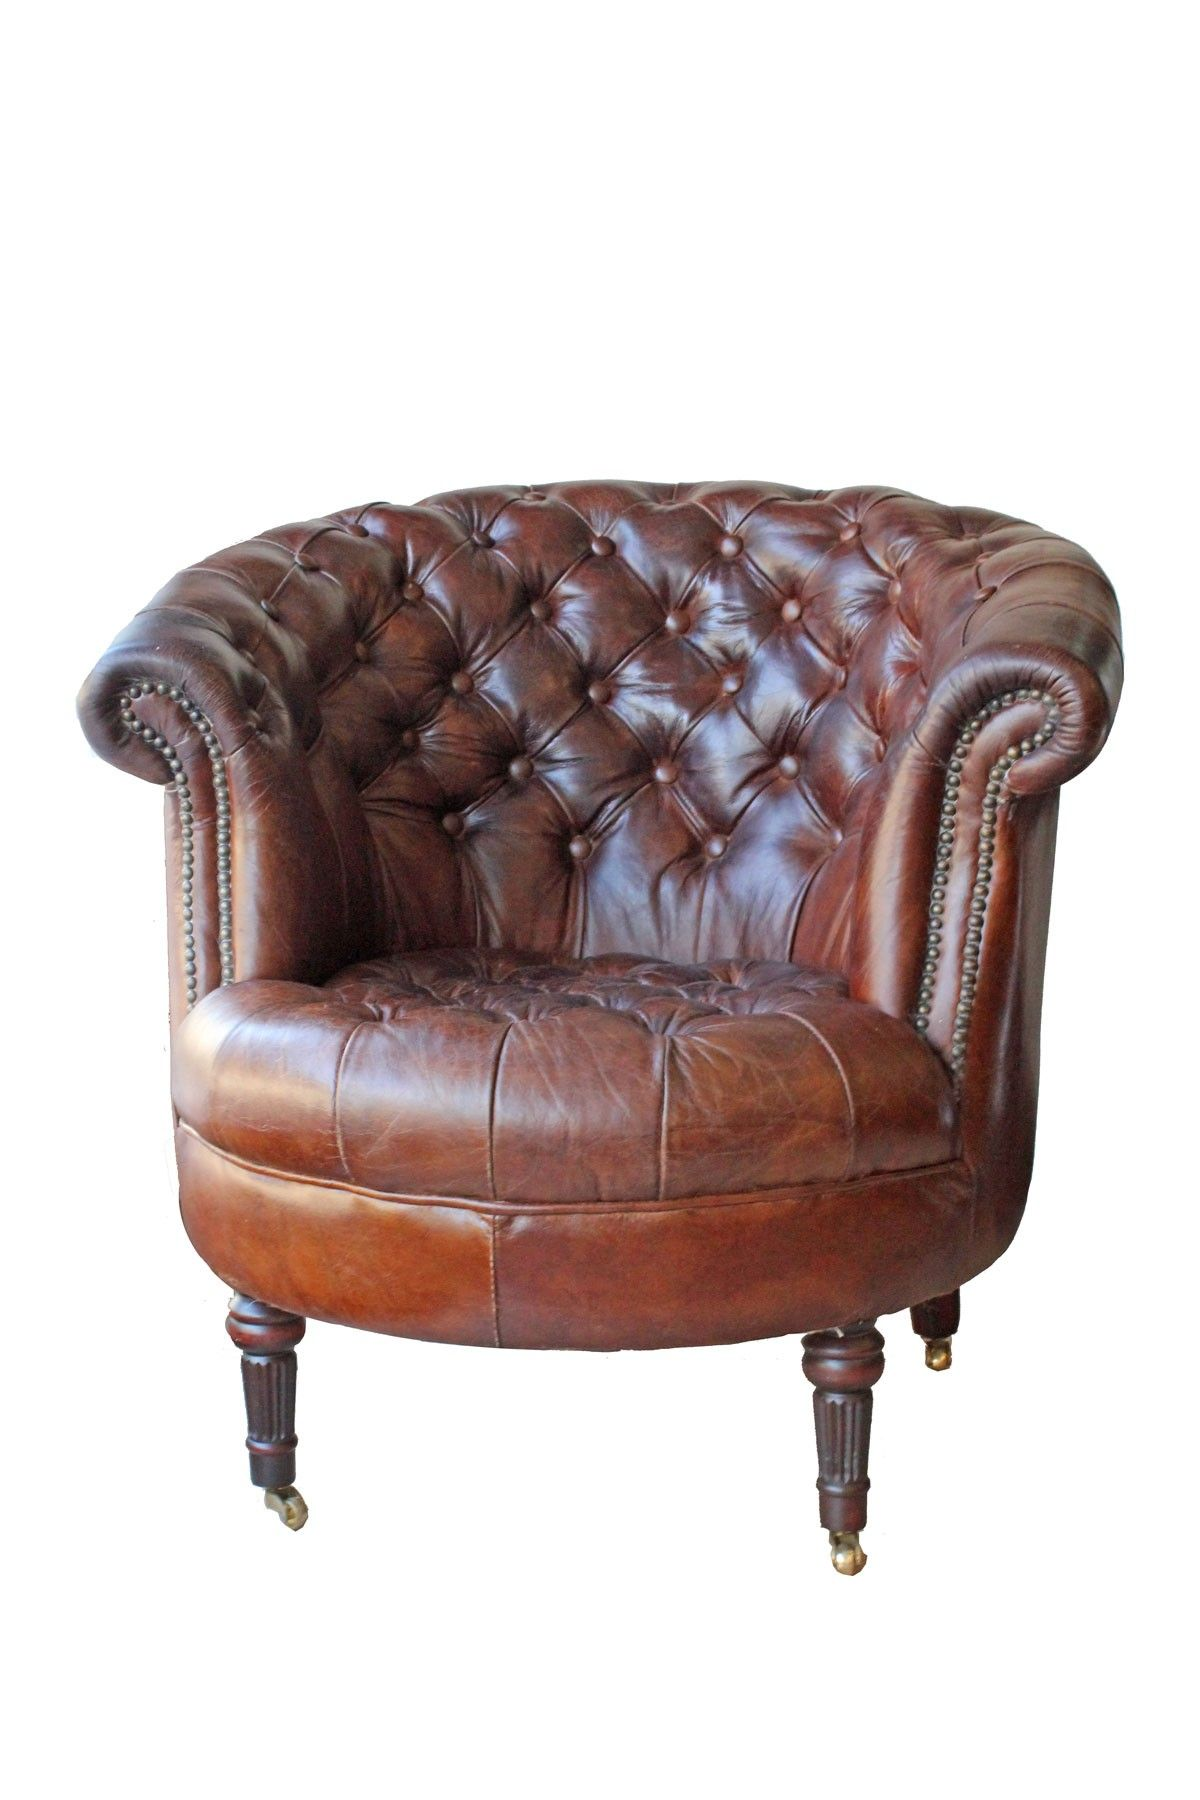 Leather Barrel Tufted Chesterield Brown Chair On